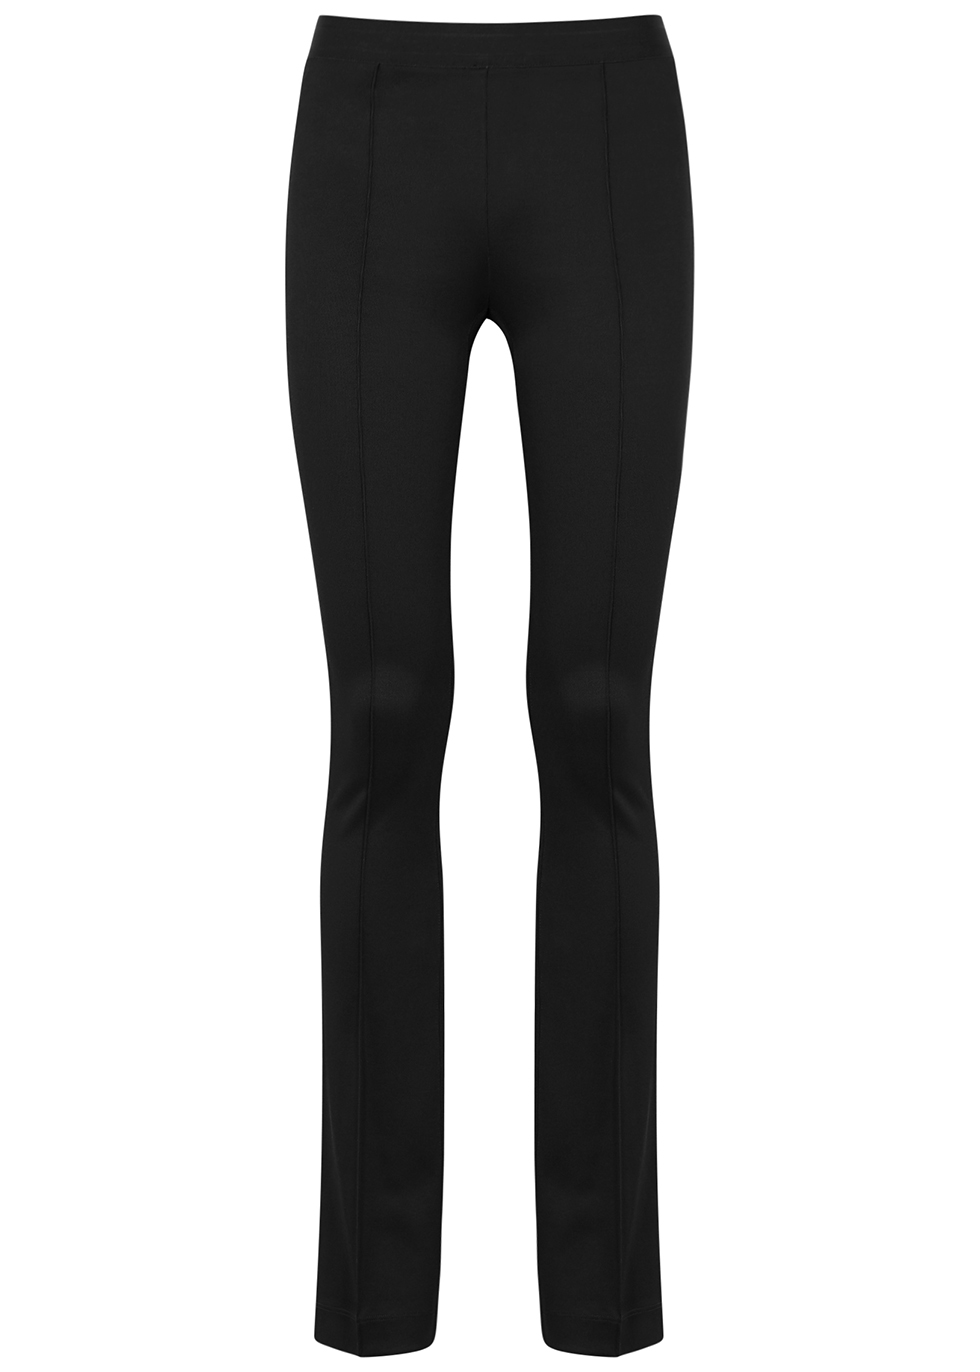 Black flared stretch-jersey leggings